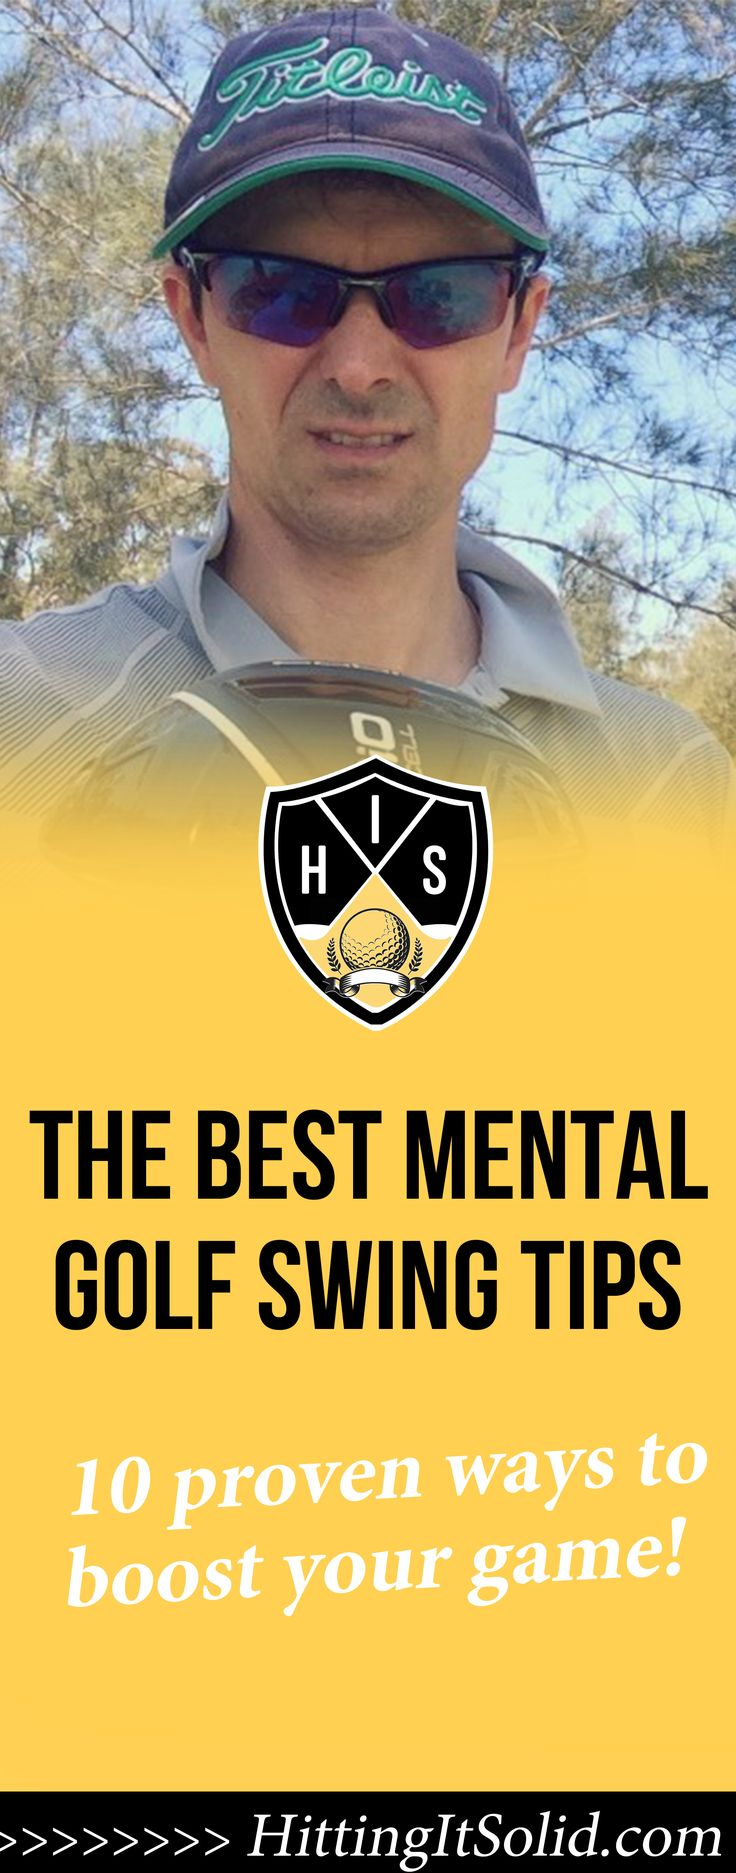 If you want to know the best mental golf tips to lower your golf scores you need to get the right information. Learn 10 proven ways to supercharge your golf game with these mental golf tips and play better golf today.